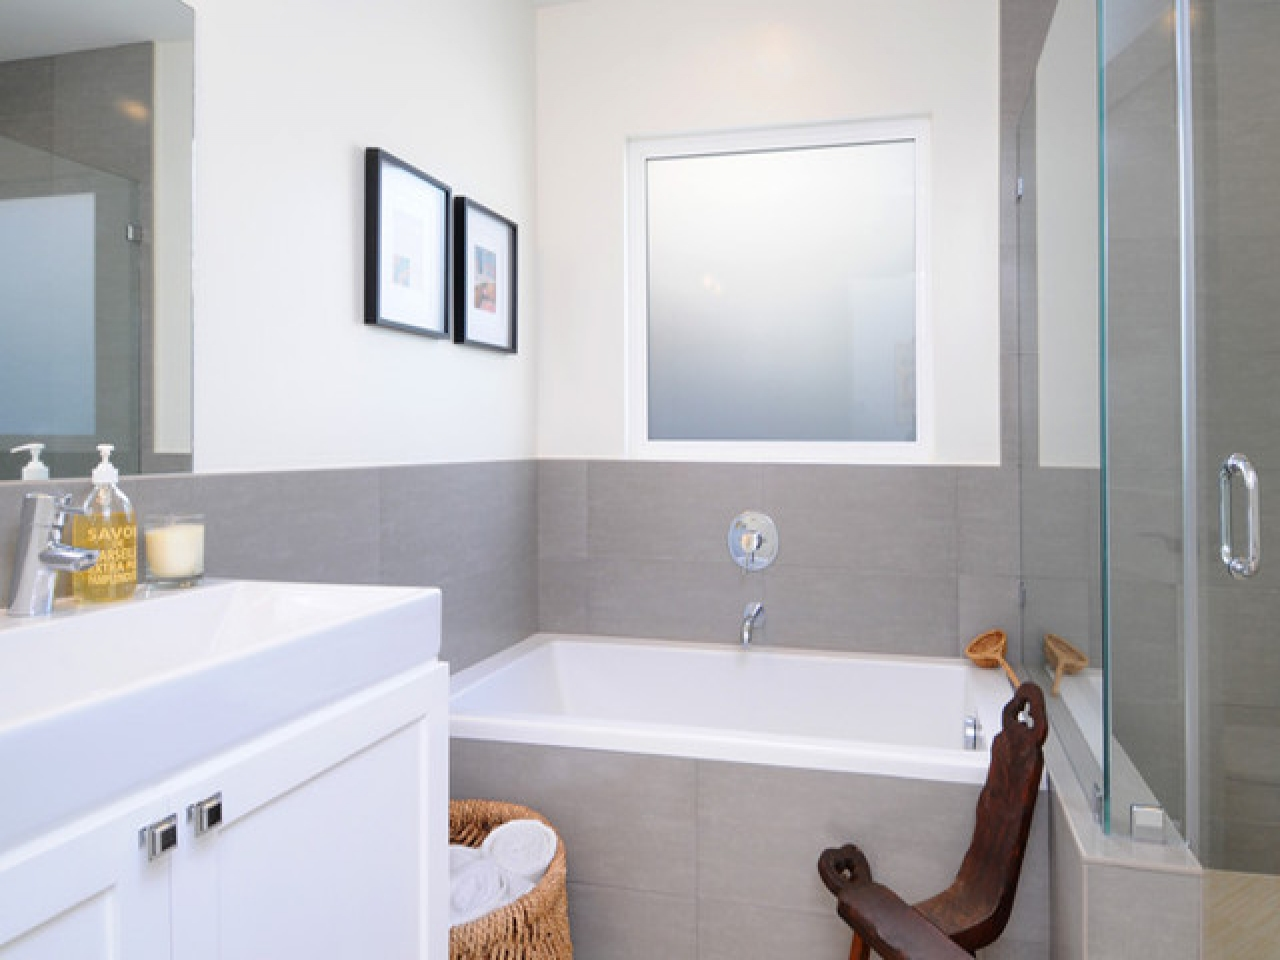 bathroom-designs-for-small-spaces-simple-bathroom-designs ... on Simple Bathroom Designs For Small Spaces  id=58003